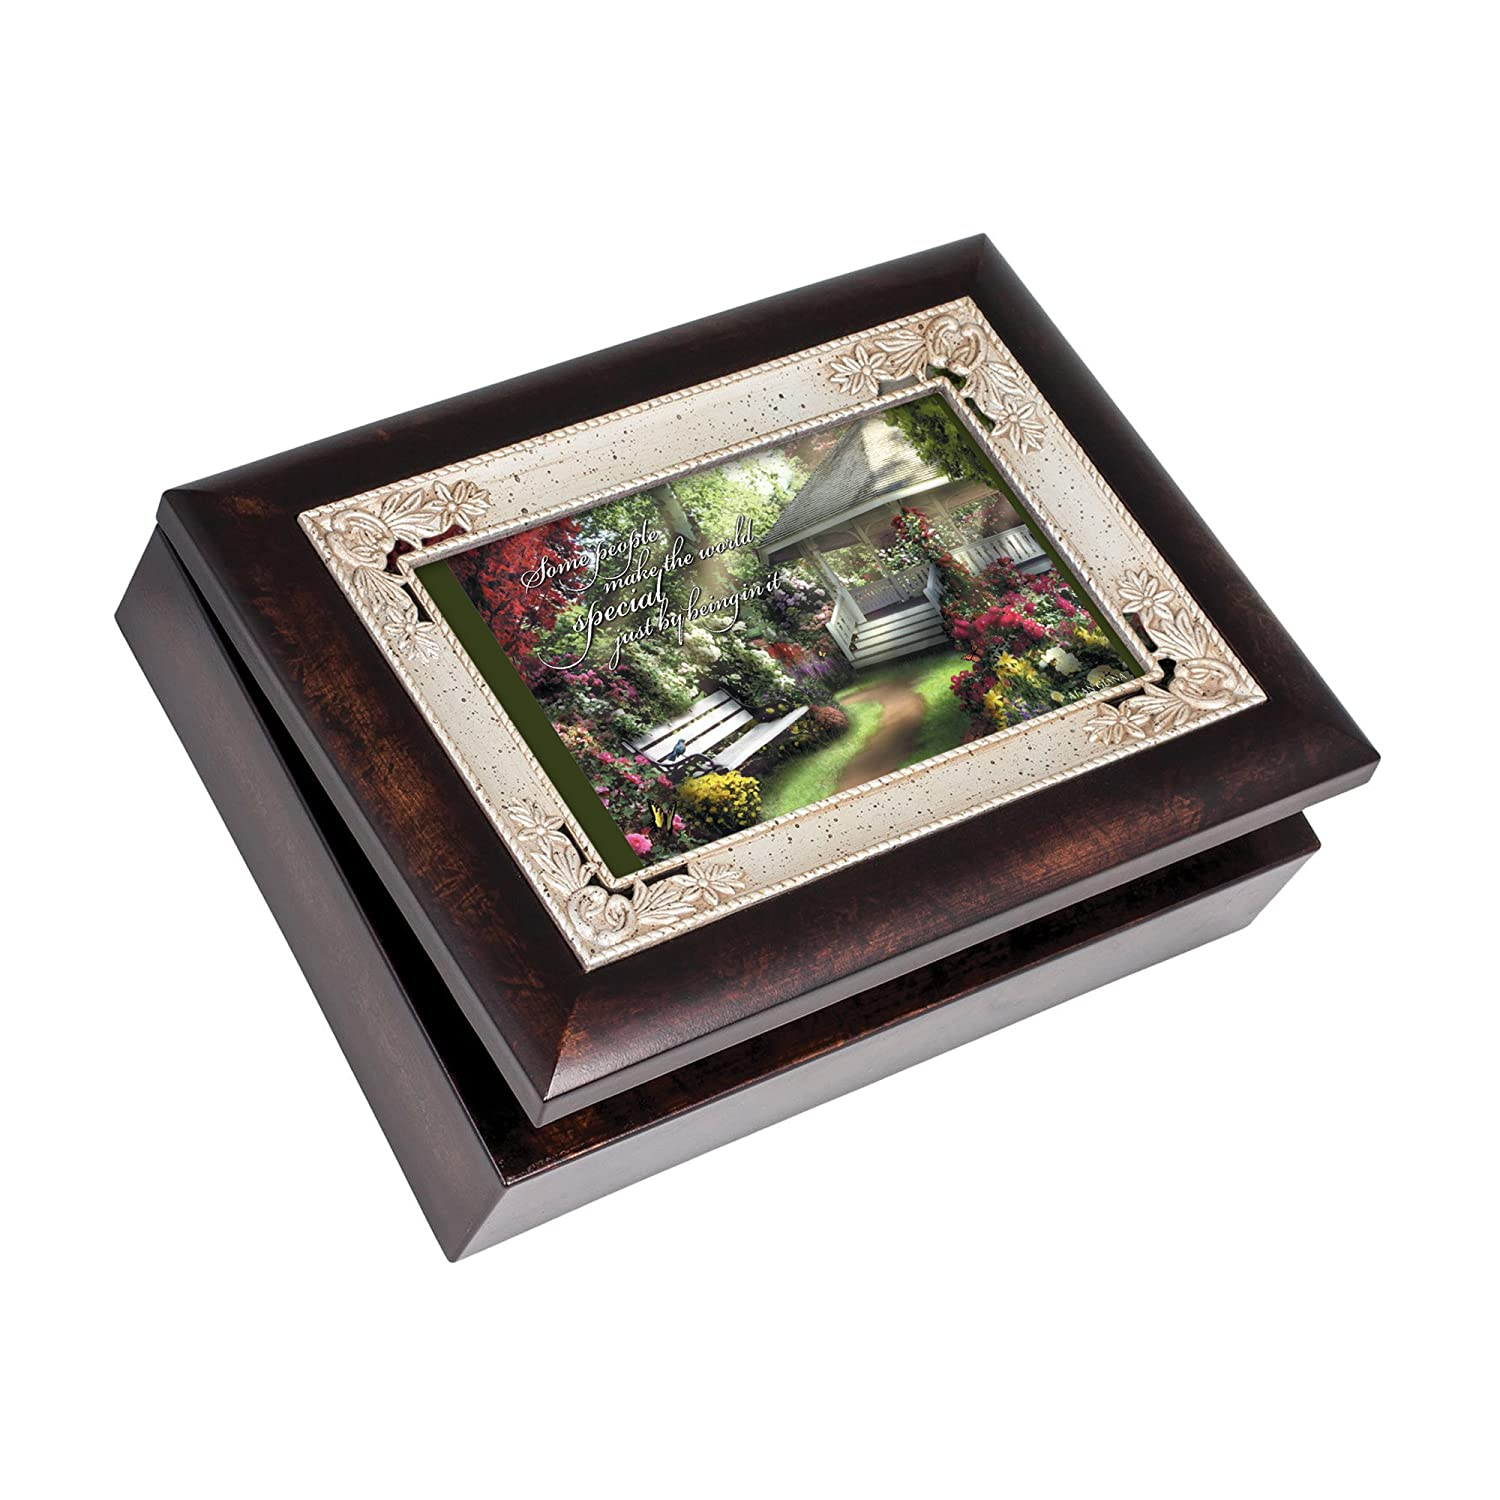 【時間指定不可】 Cottage Garden Special B00BRXBGS4 People Burlwood With Silver Plays Inlay Musical Italian Style Music Musical Jewelry Box Plays Wonderful World by Cottage Garden B00BRXBGS4, ケンタウロス:b637bfca --- arcego.dominiotemporario.com